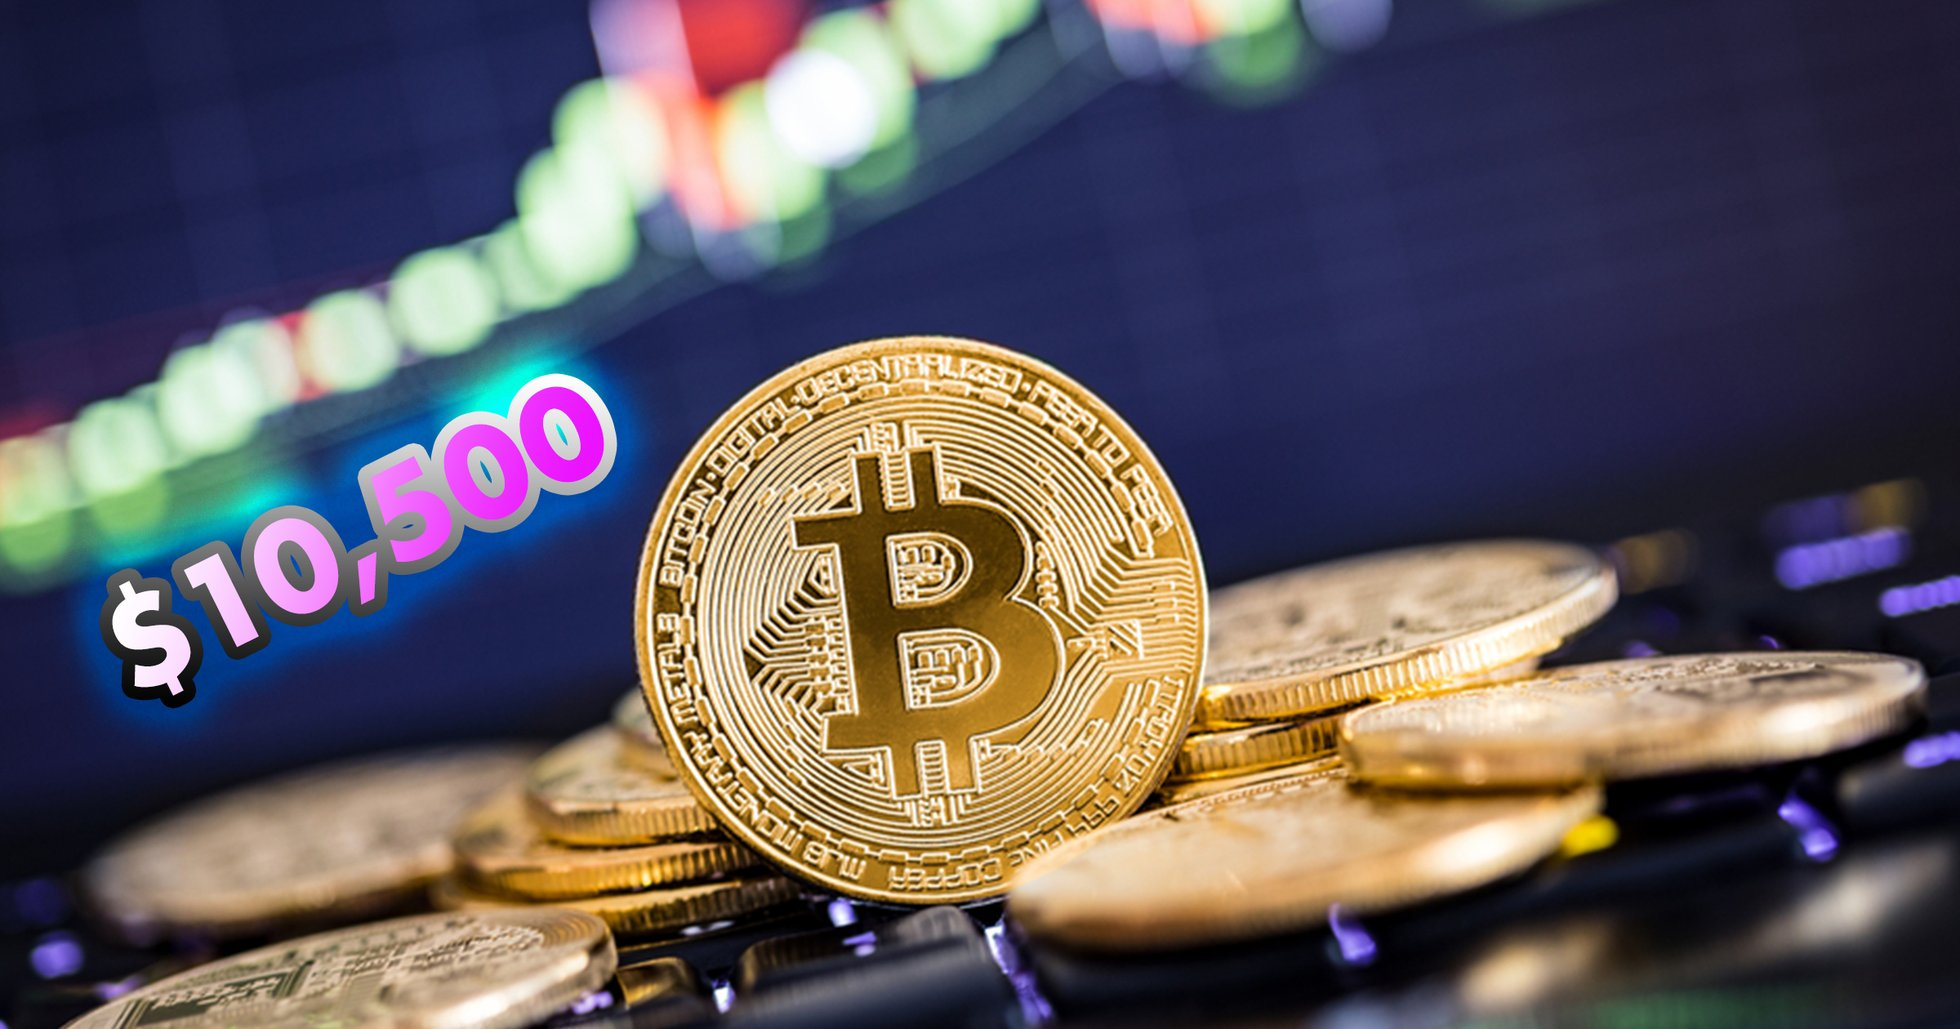 Bitcoin price reaches $10,500 – increased $1,000 in 30 minutes